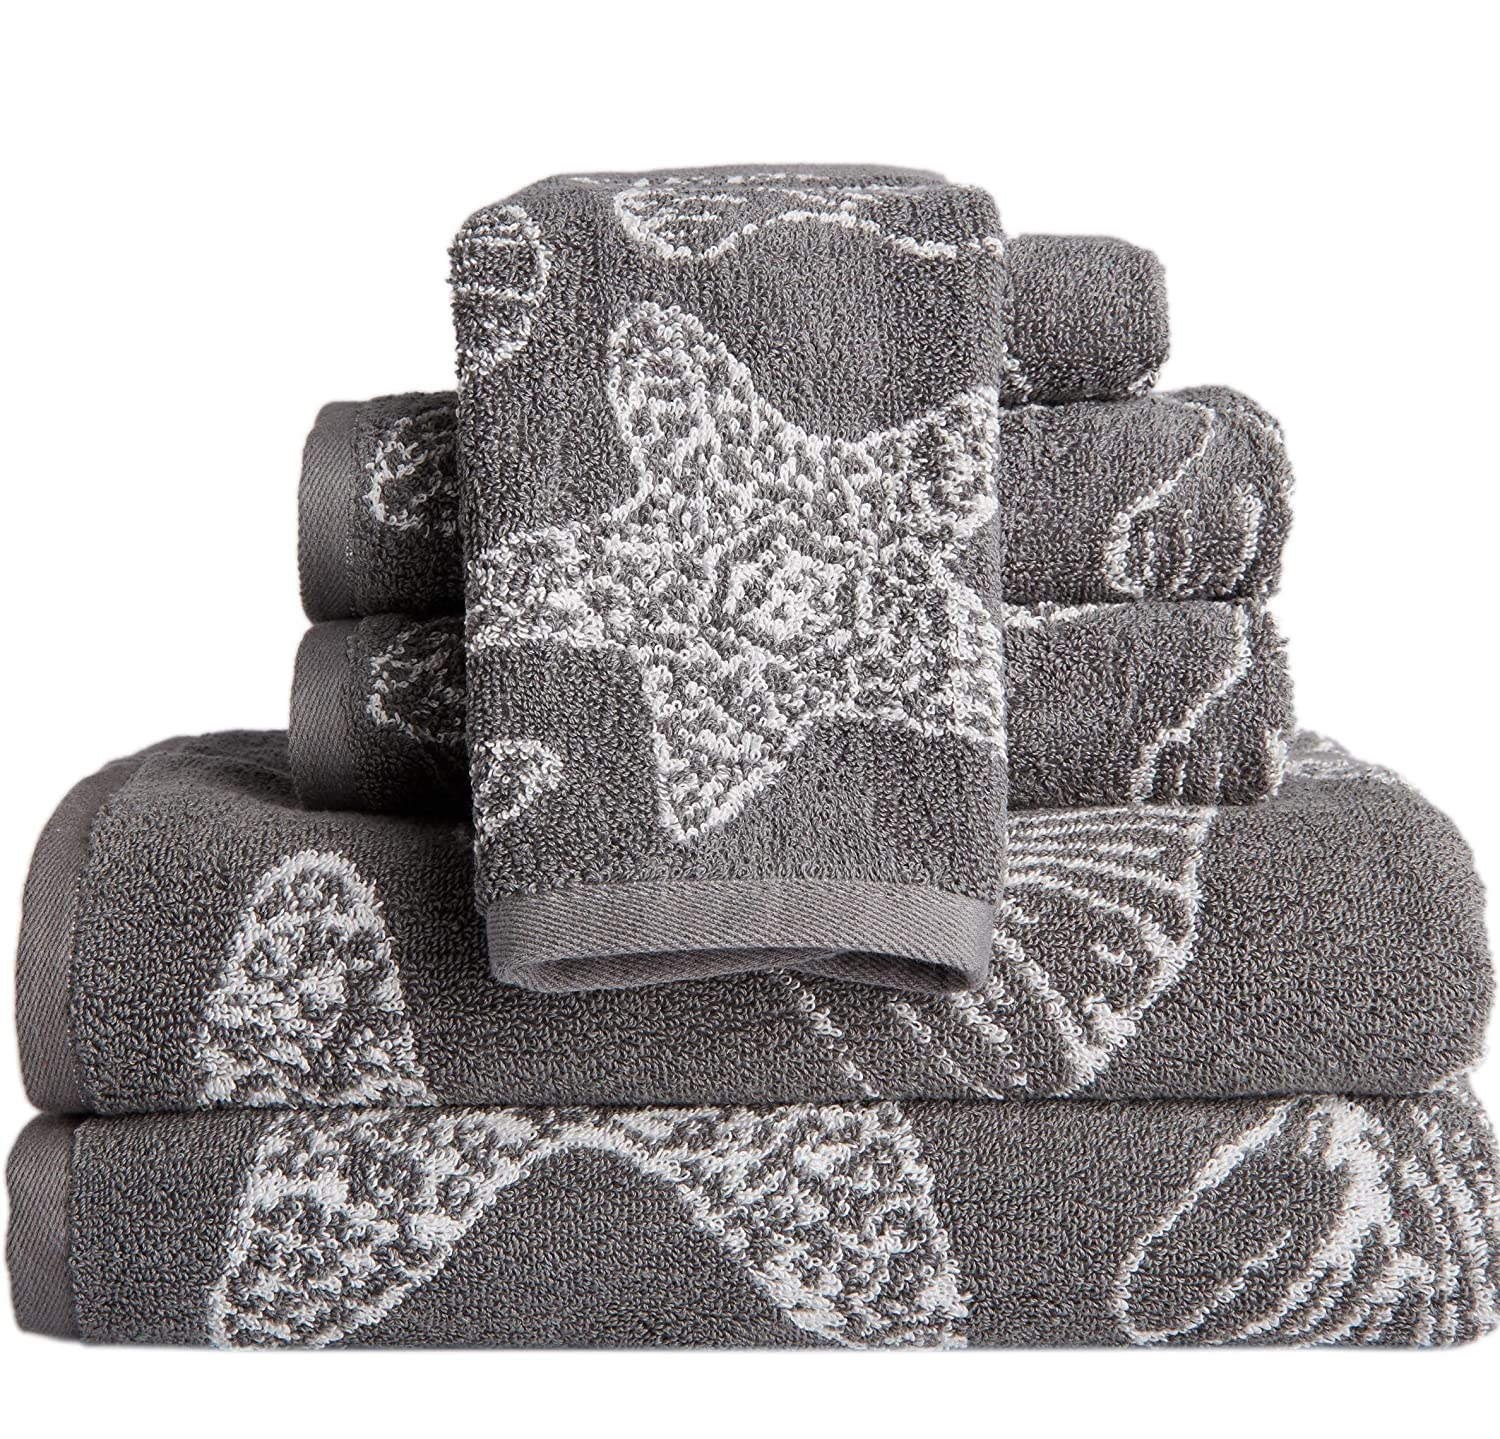 6 Piece Towel Set, Sea Shell Pattern Starfish Bath Towels